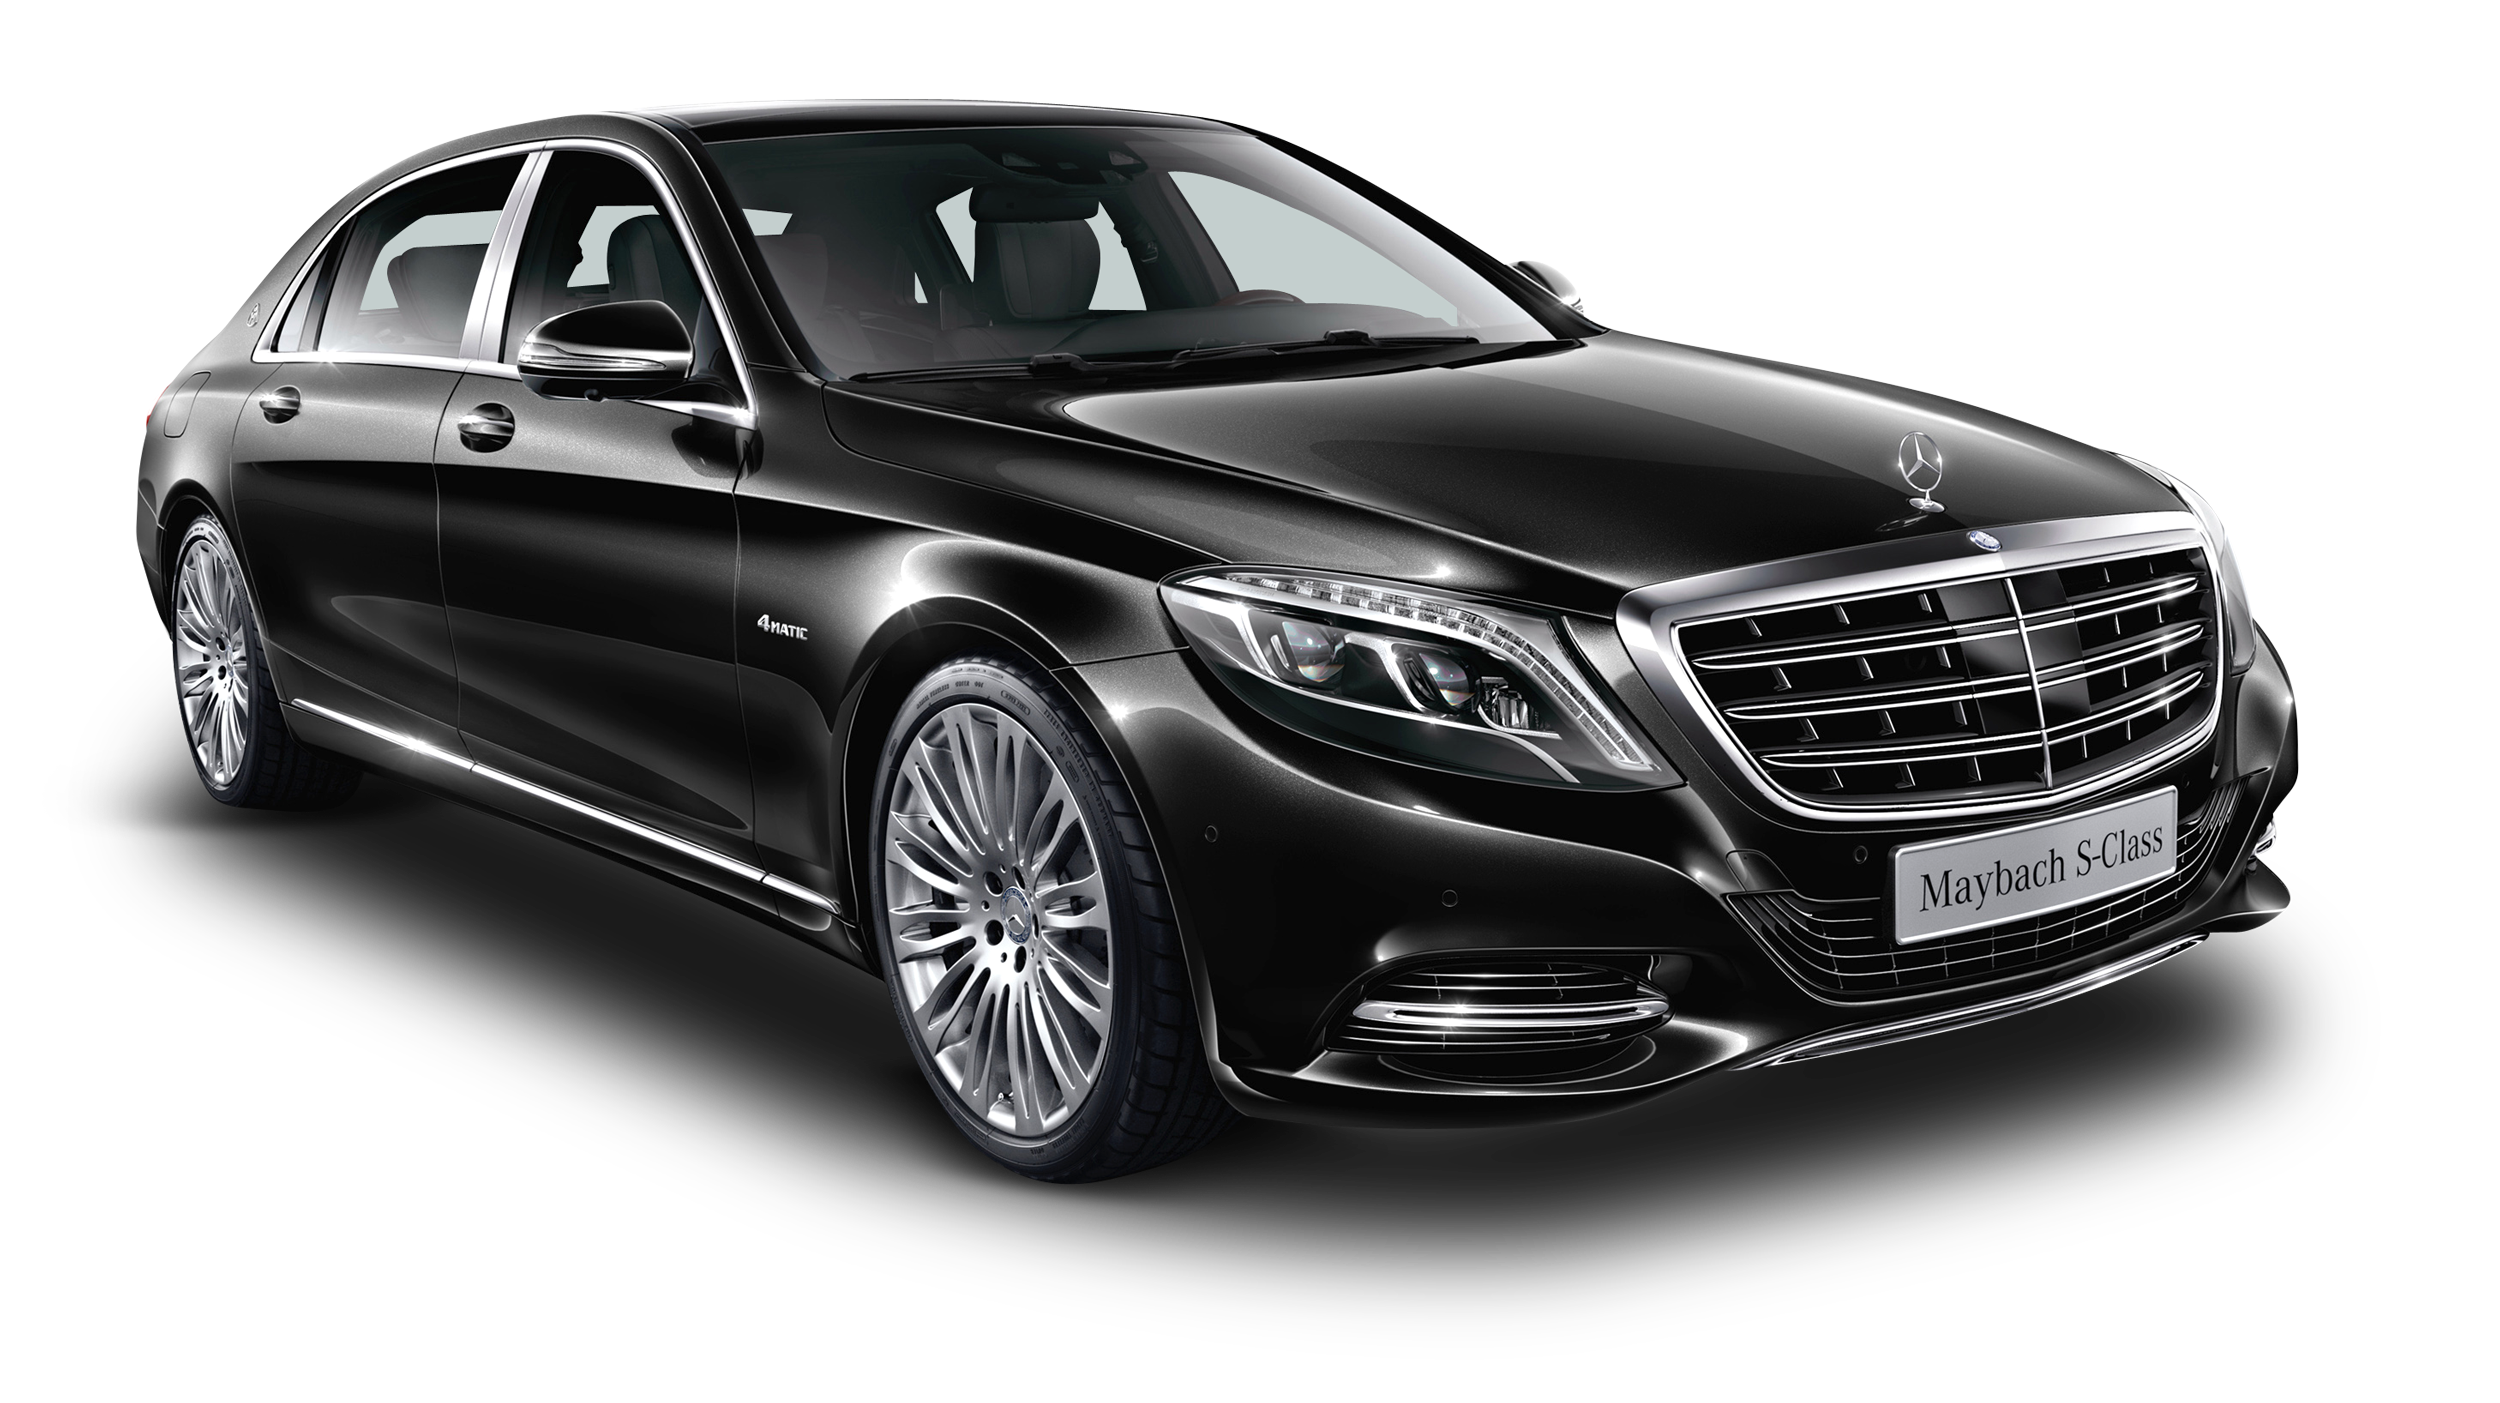 Car insurance thailand for mercedes benz s280 class 1 2 3 for Mercedes benz insurance